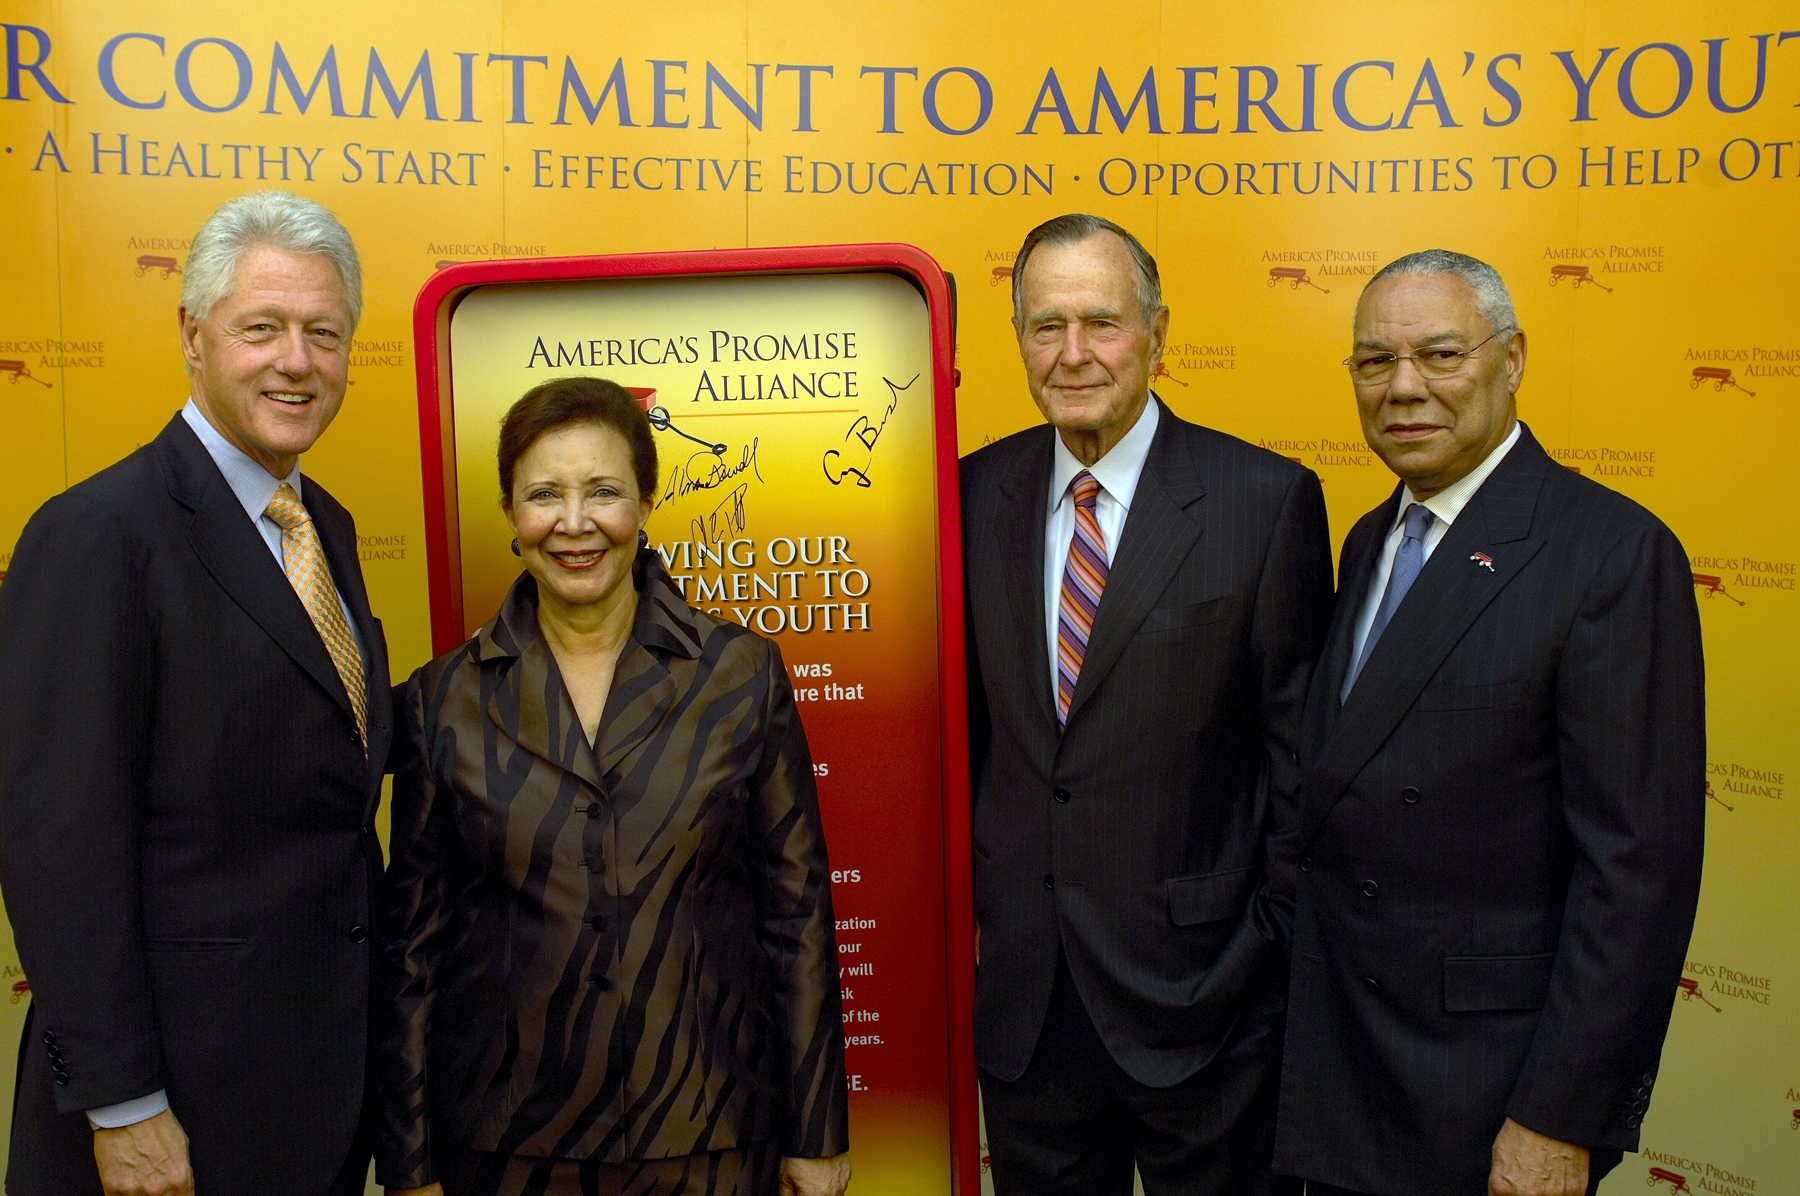 Presidents Clinton and Bush Sr, along with Col Powell and wife Alma at the 10th Anniversary Celebration of America's Promise Alliance